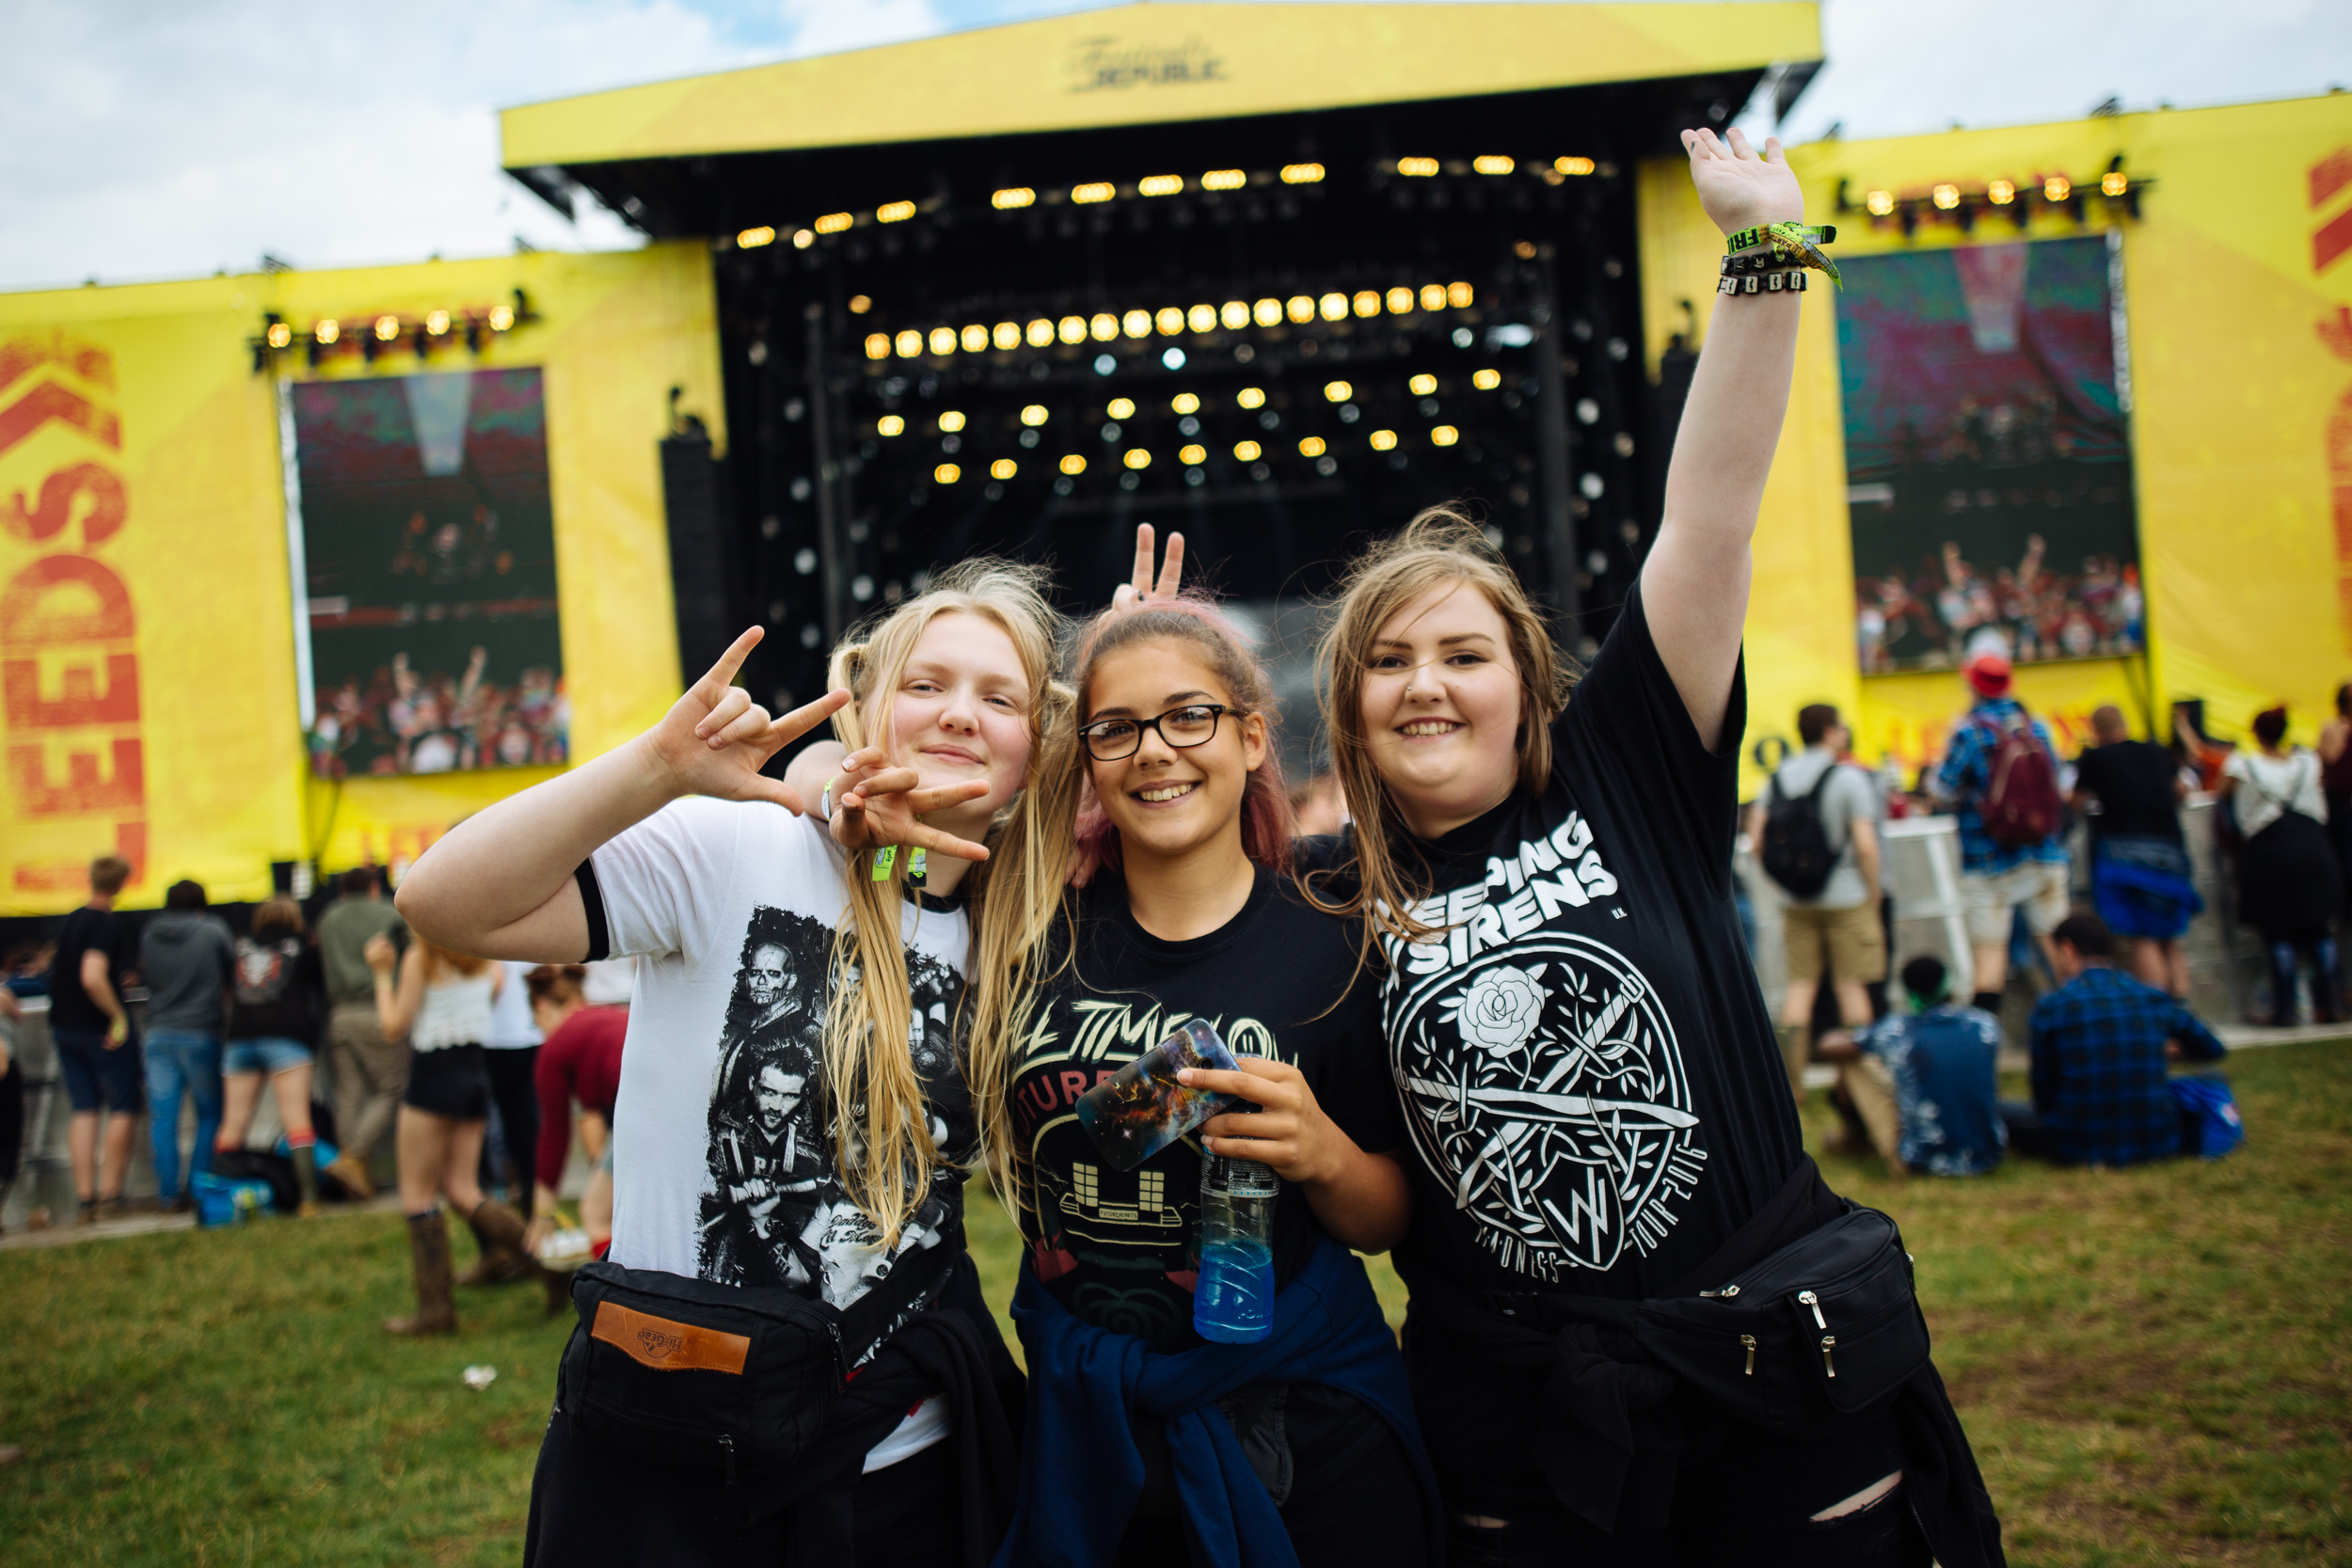 Awesome people at Leeds Festival by Adam Elmakias